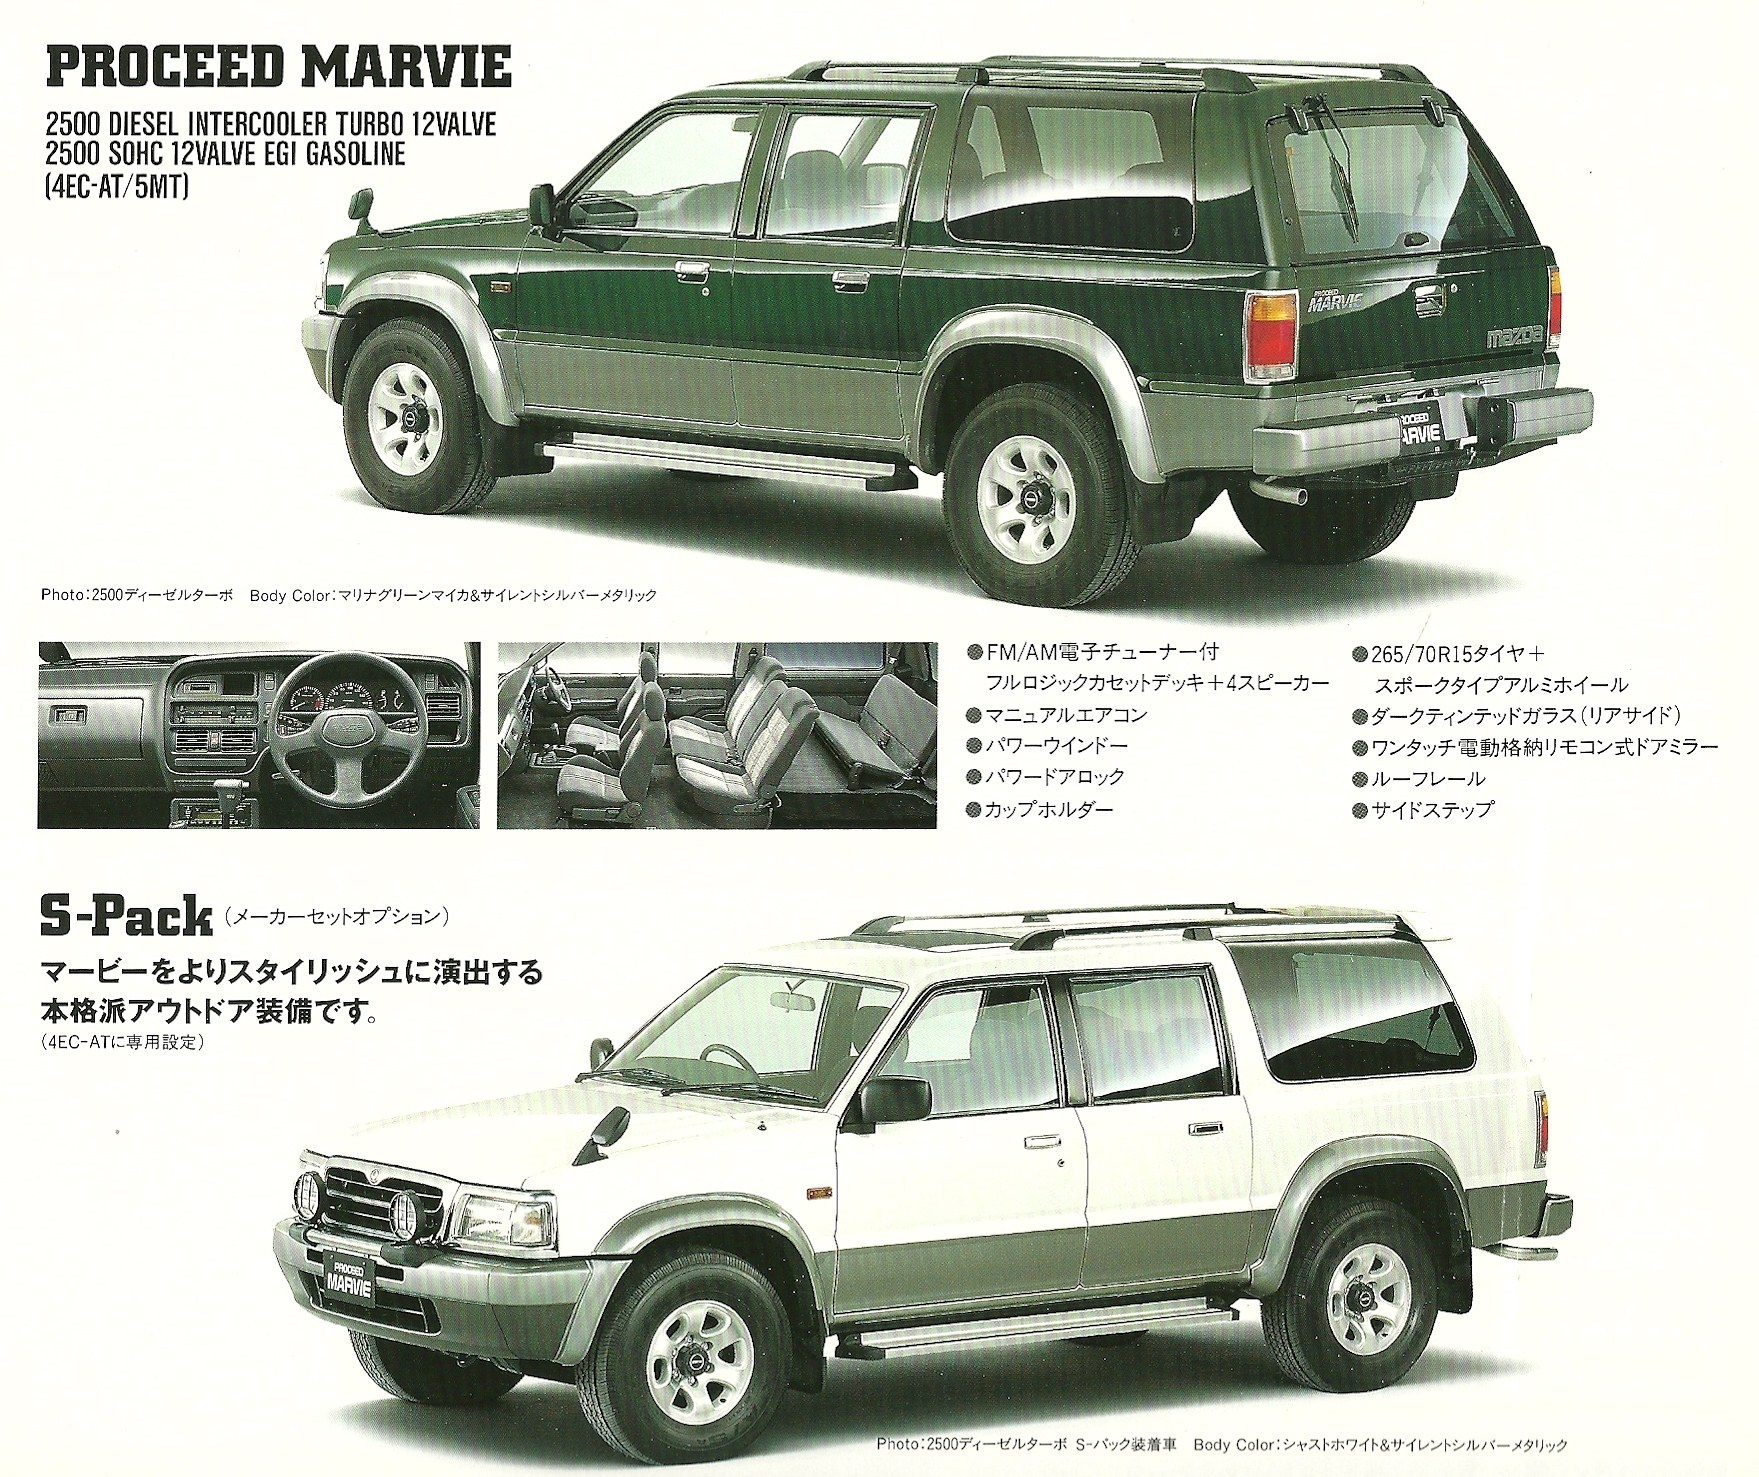 1996 Mazda Proceed Marvie in Japan | Flickr - Photo Sharing!